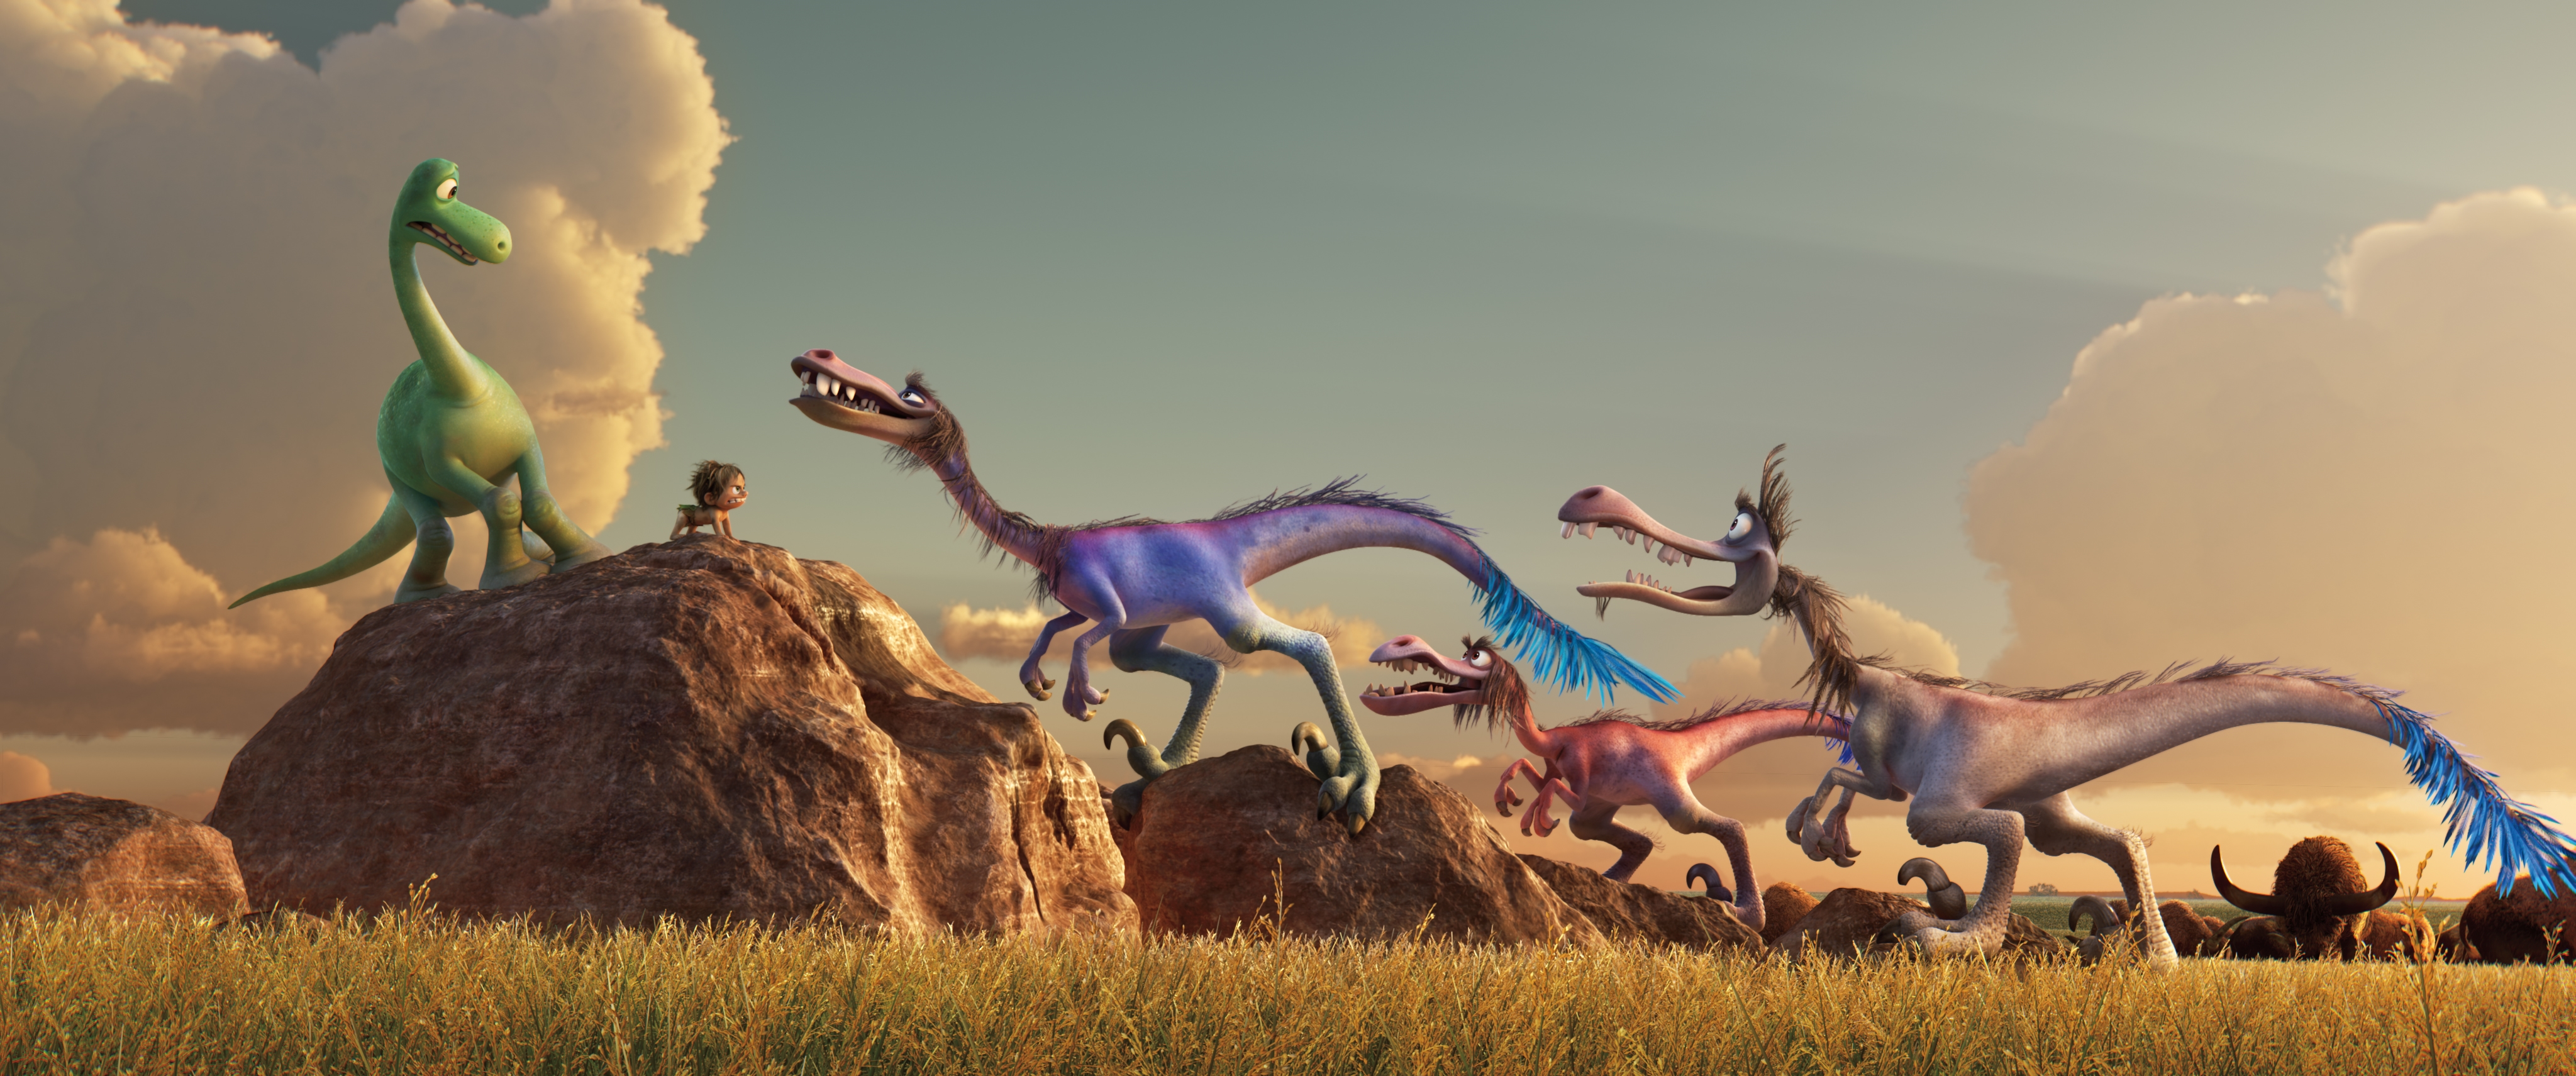 The Good Dinosaur Full HD Wallpaper and Background ...